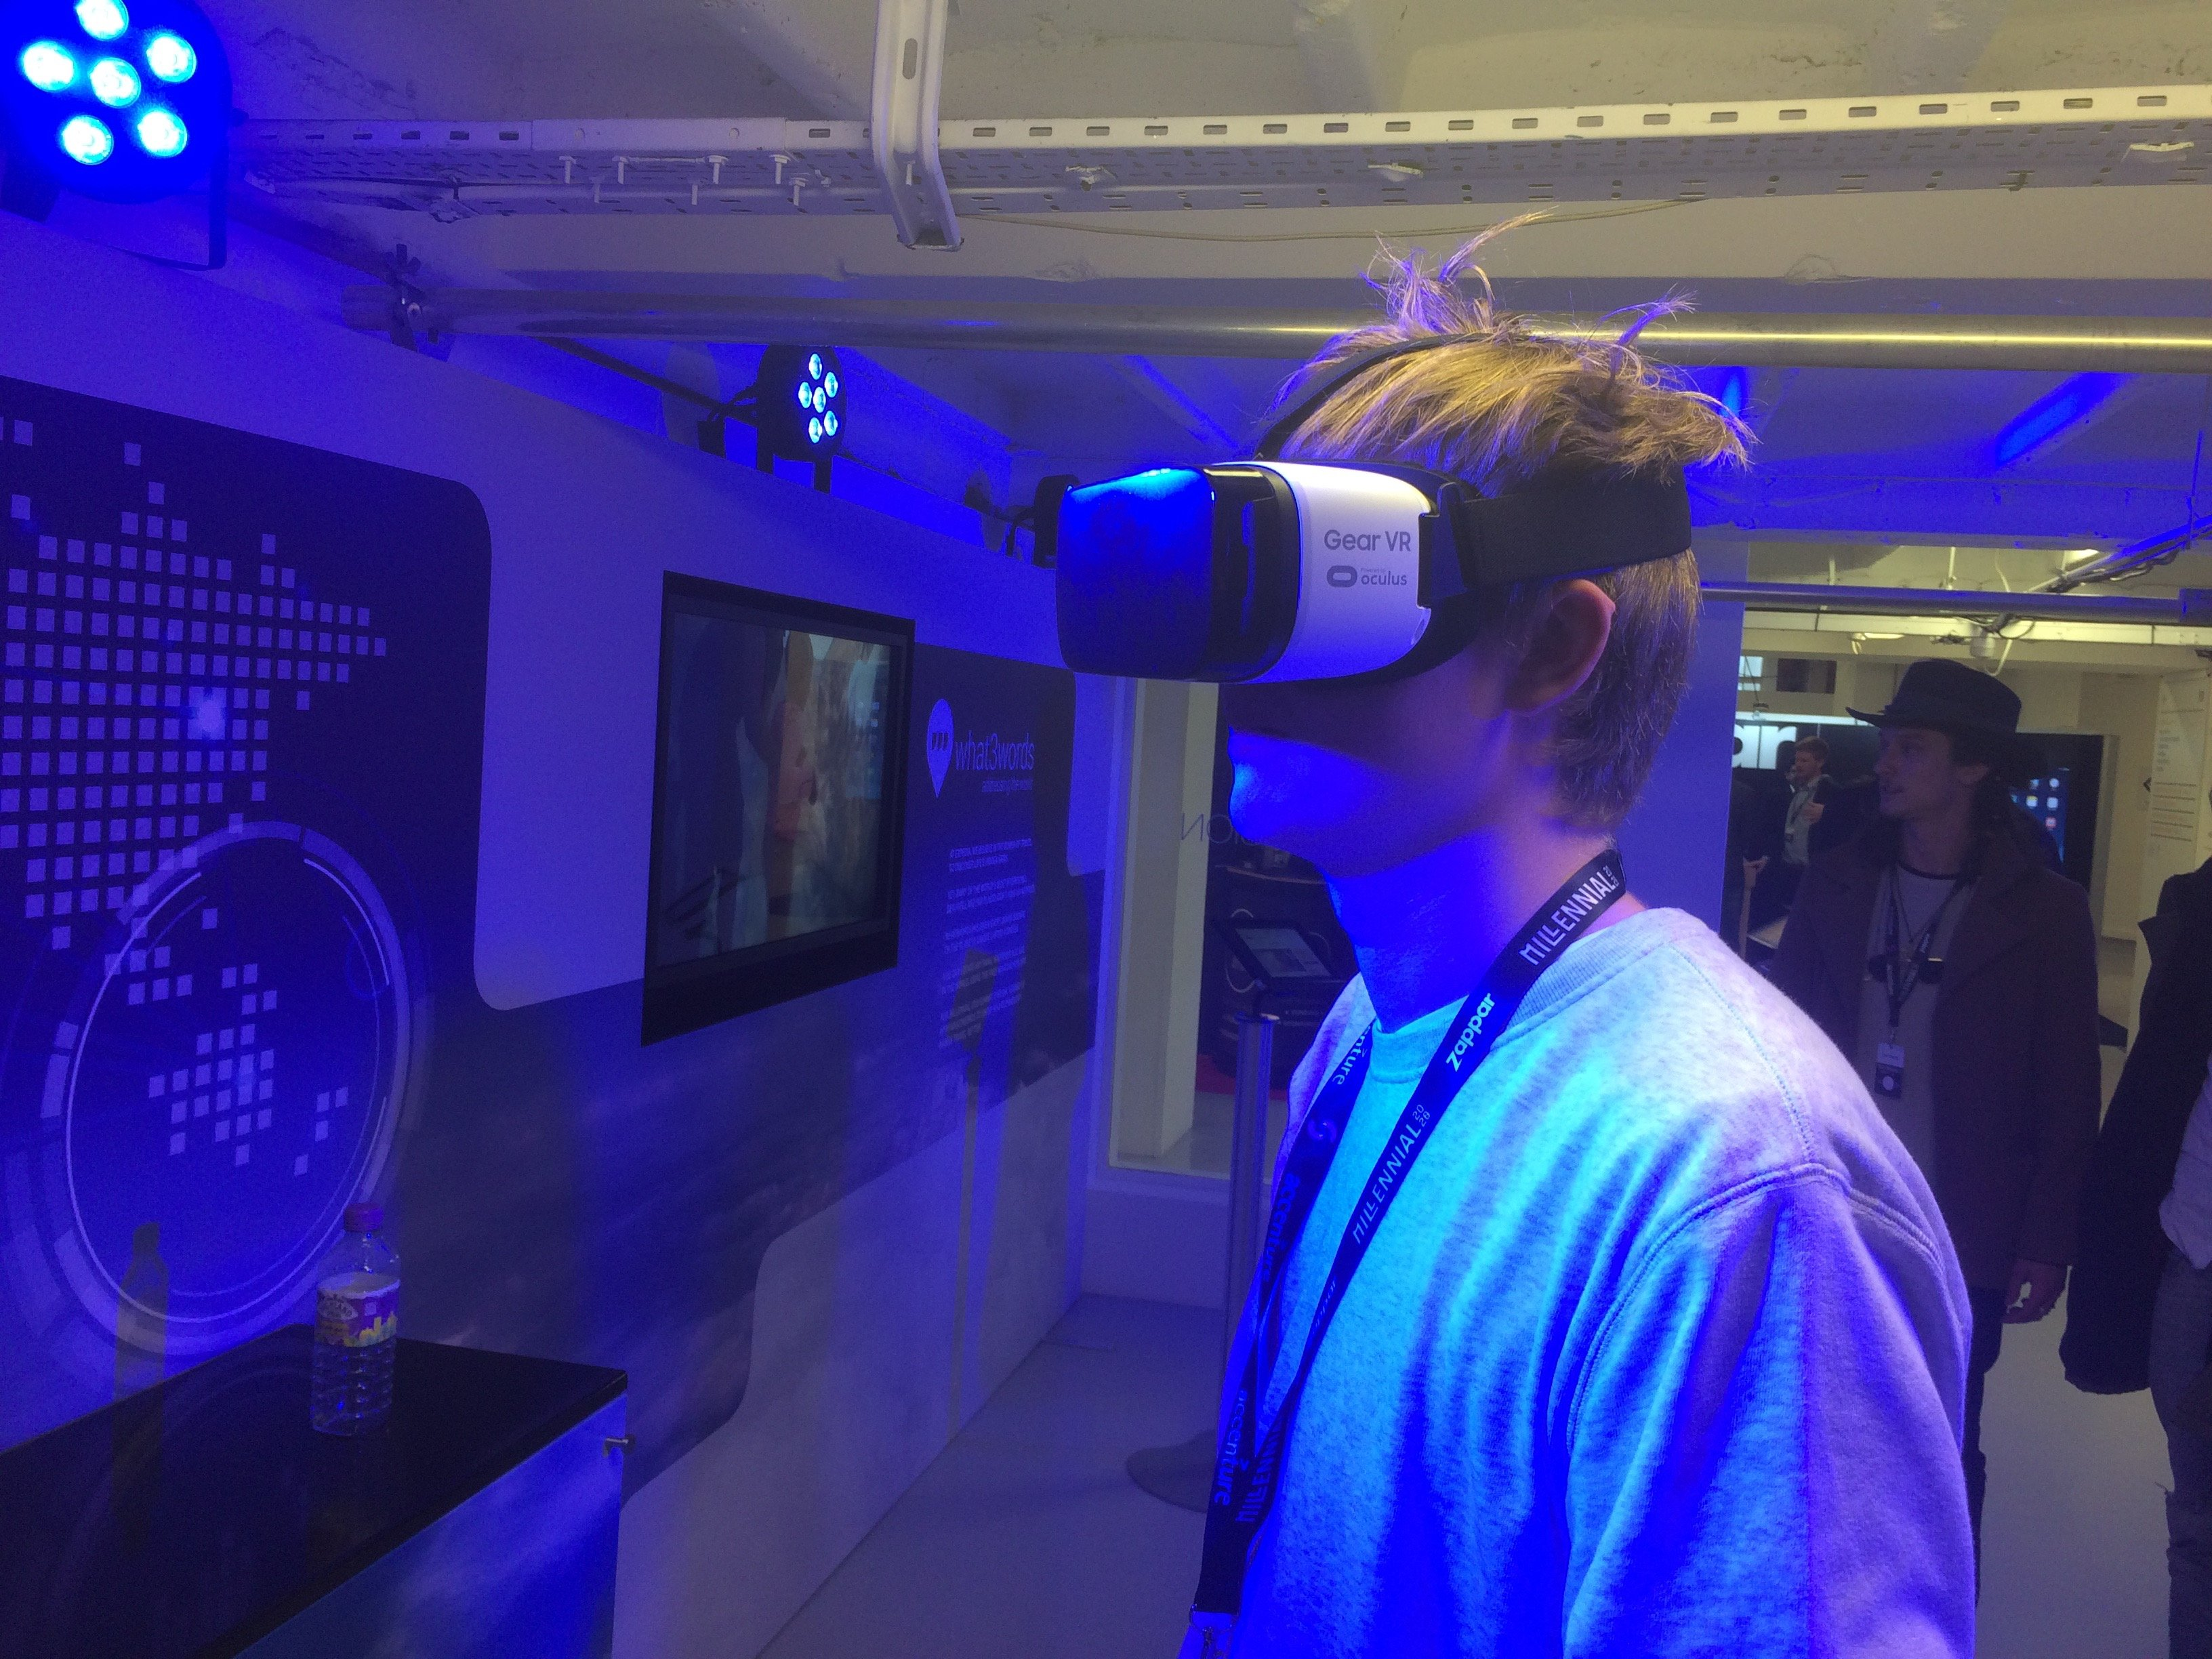 Who needs reality reality when you can have virtual reality